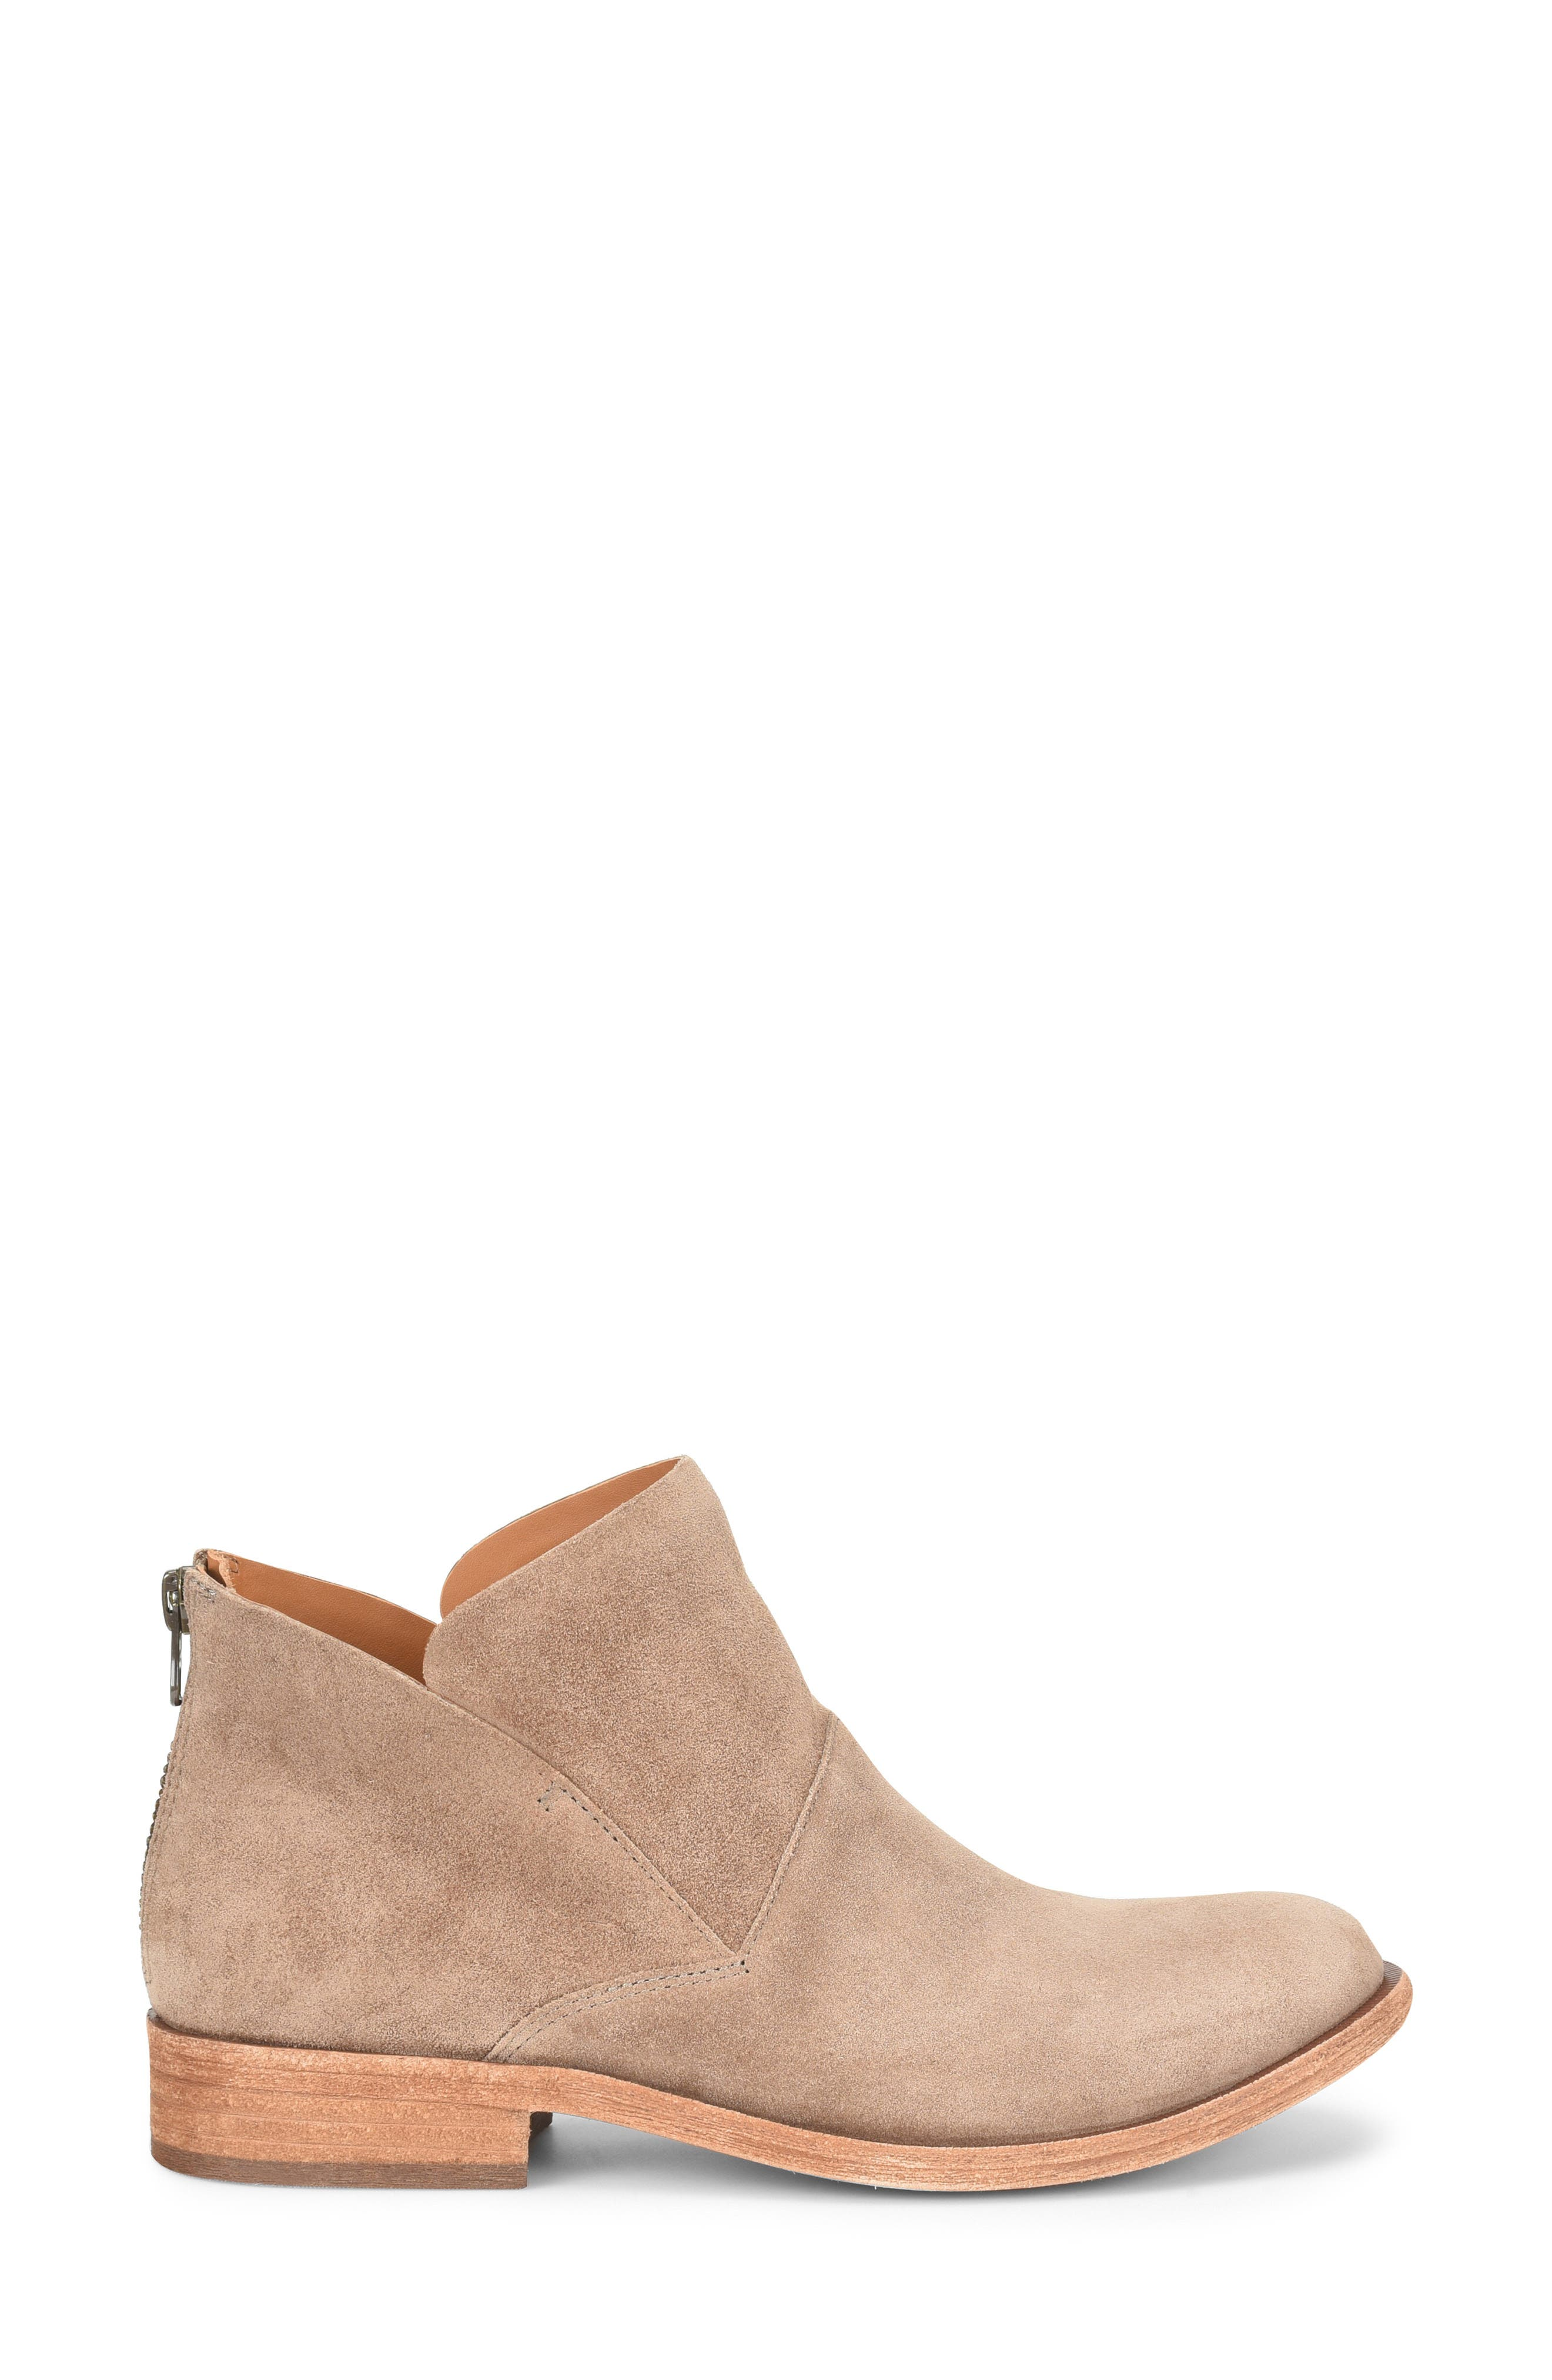 KORK-EASE<SUP>®</SUP>, Ryder Ankle Boot, Alternate thumbnail 3, color, TAUPE GREY SUEDE